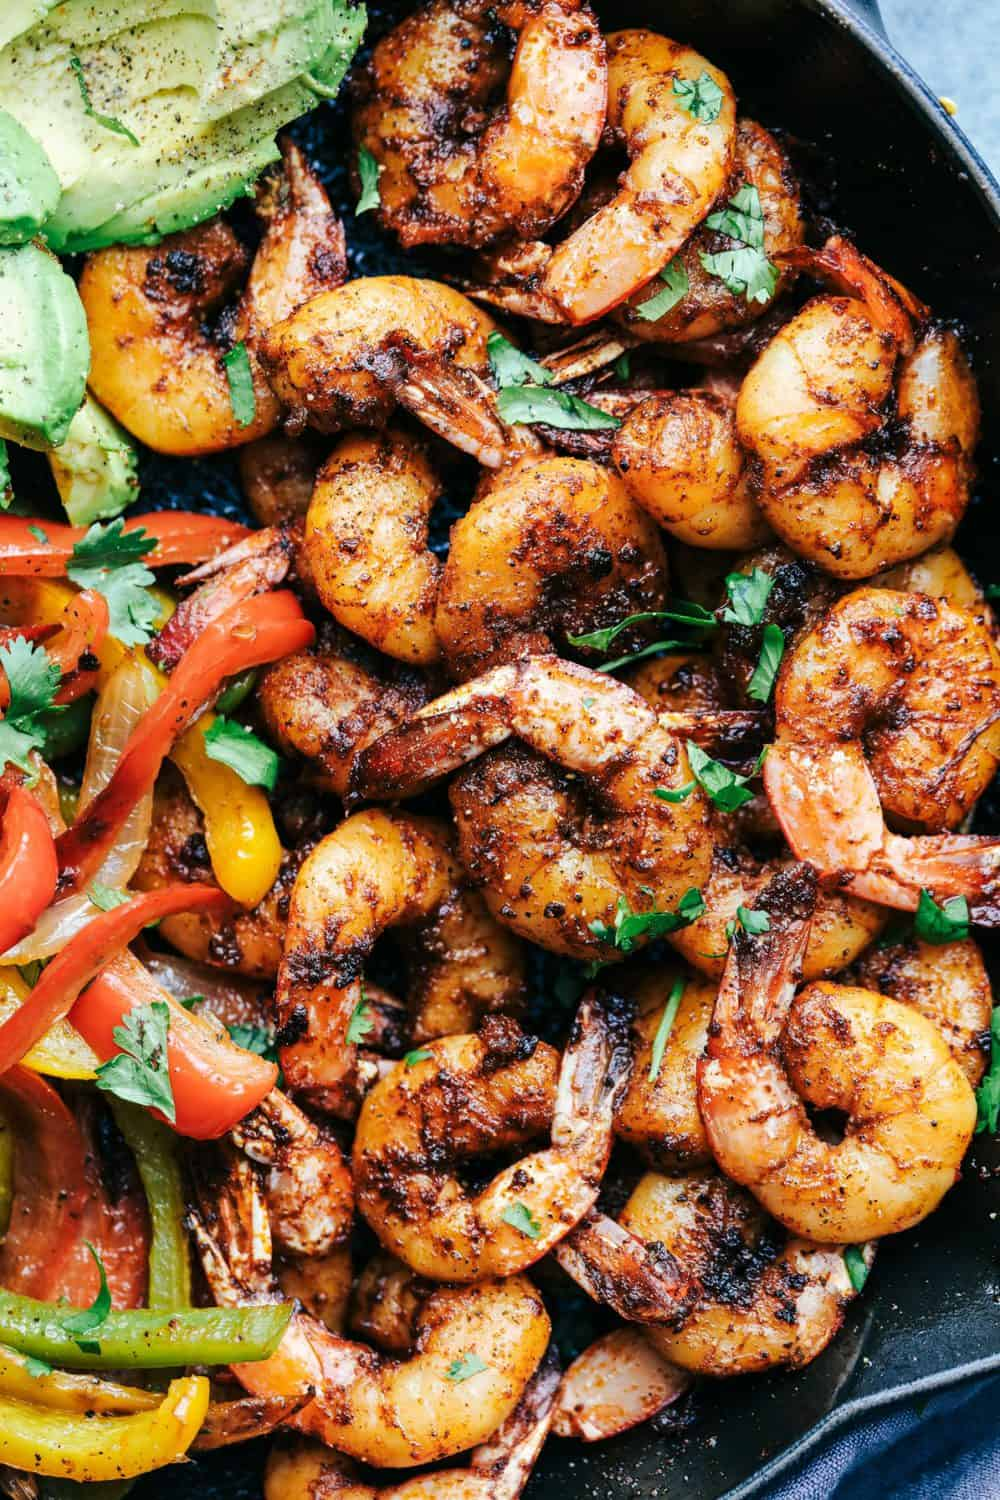 20 Minute Skillet Blackened Shrimp Fajitas in a skillet.